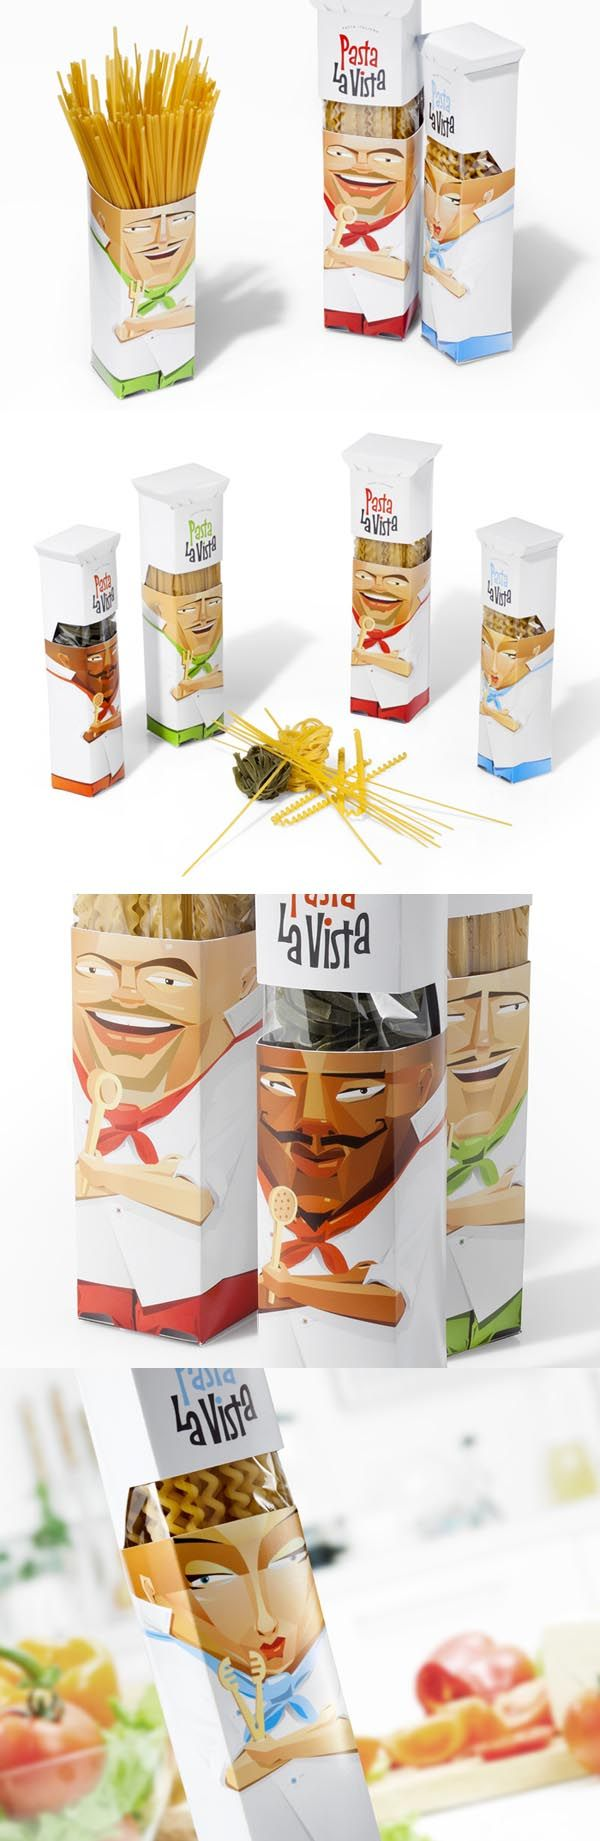 Pasta La Vista Concept. I would soooo buy these.